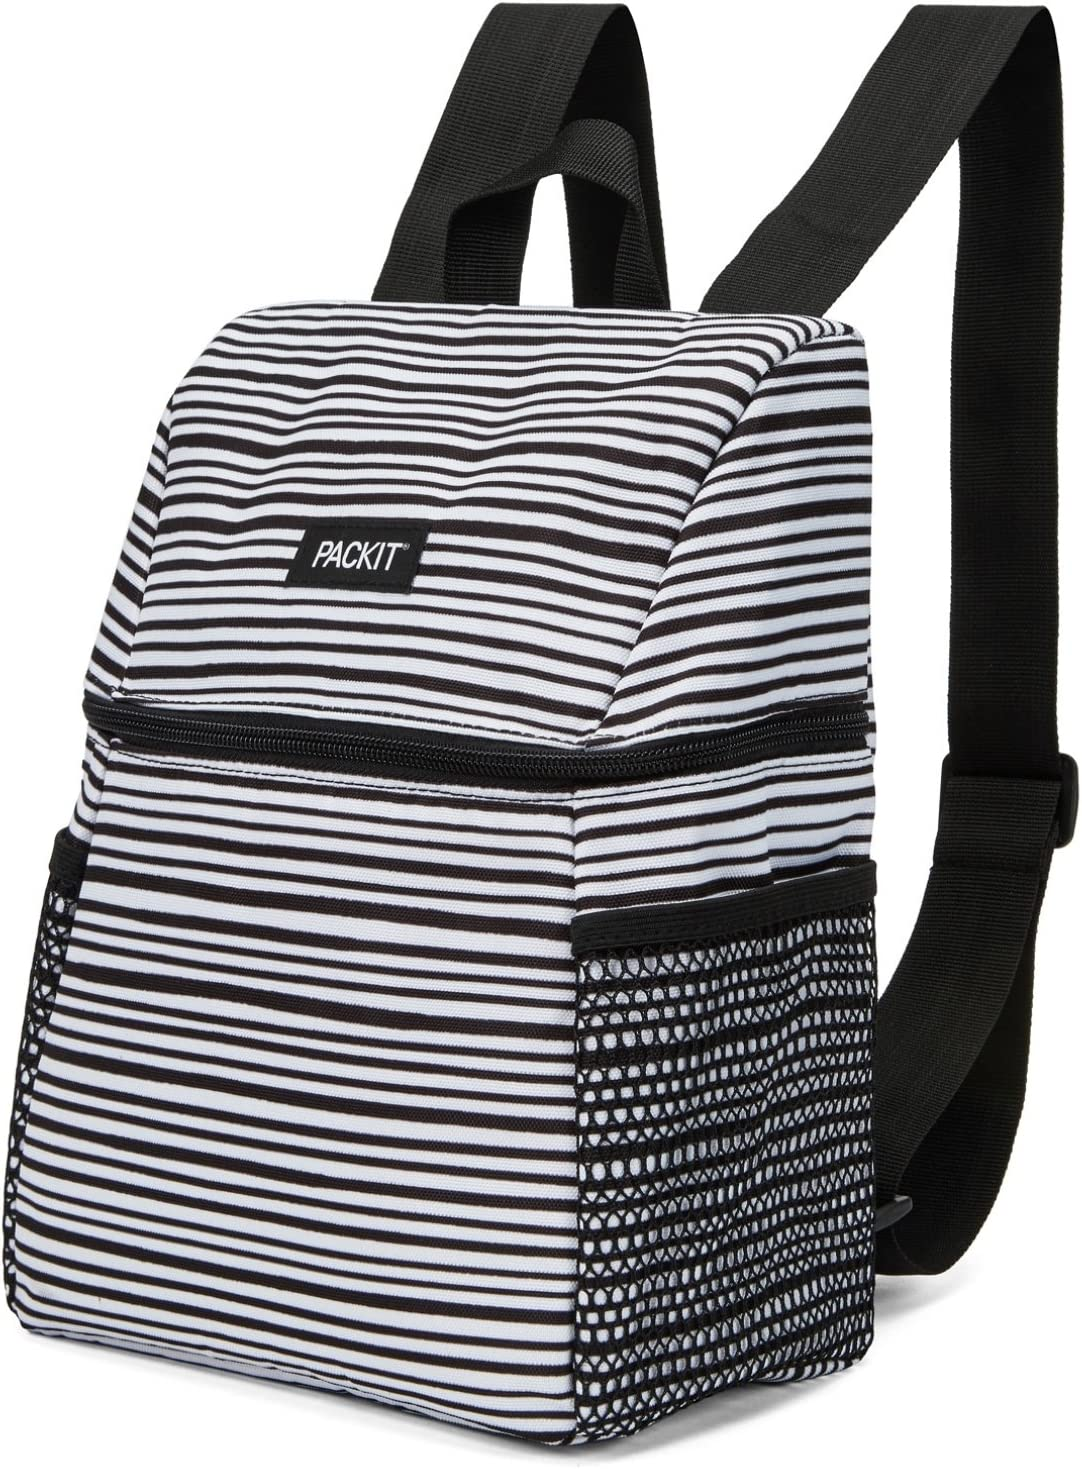 PackIt Everyday Backpack, Wobbly Stripes Freezable Lunch Bag, one size